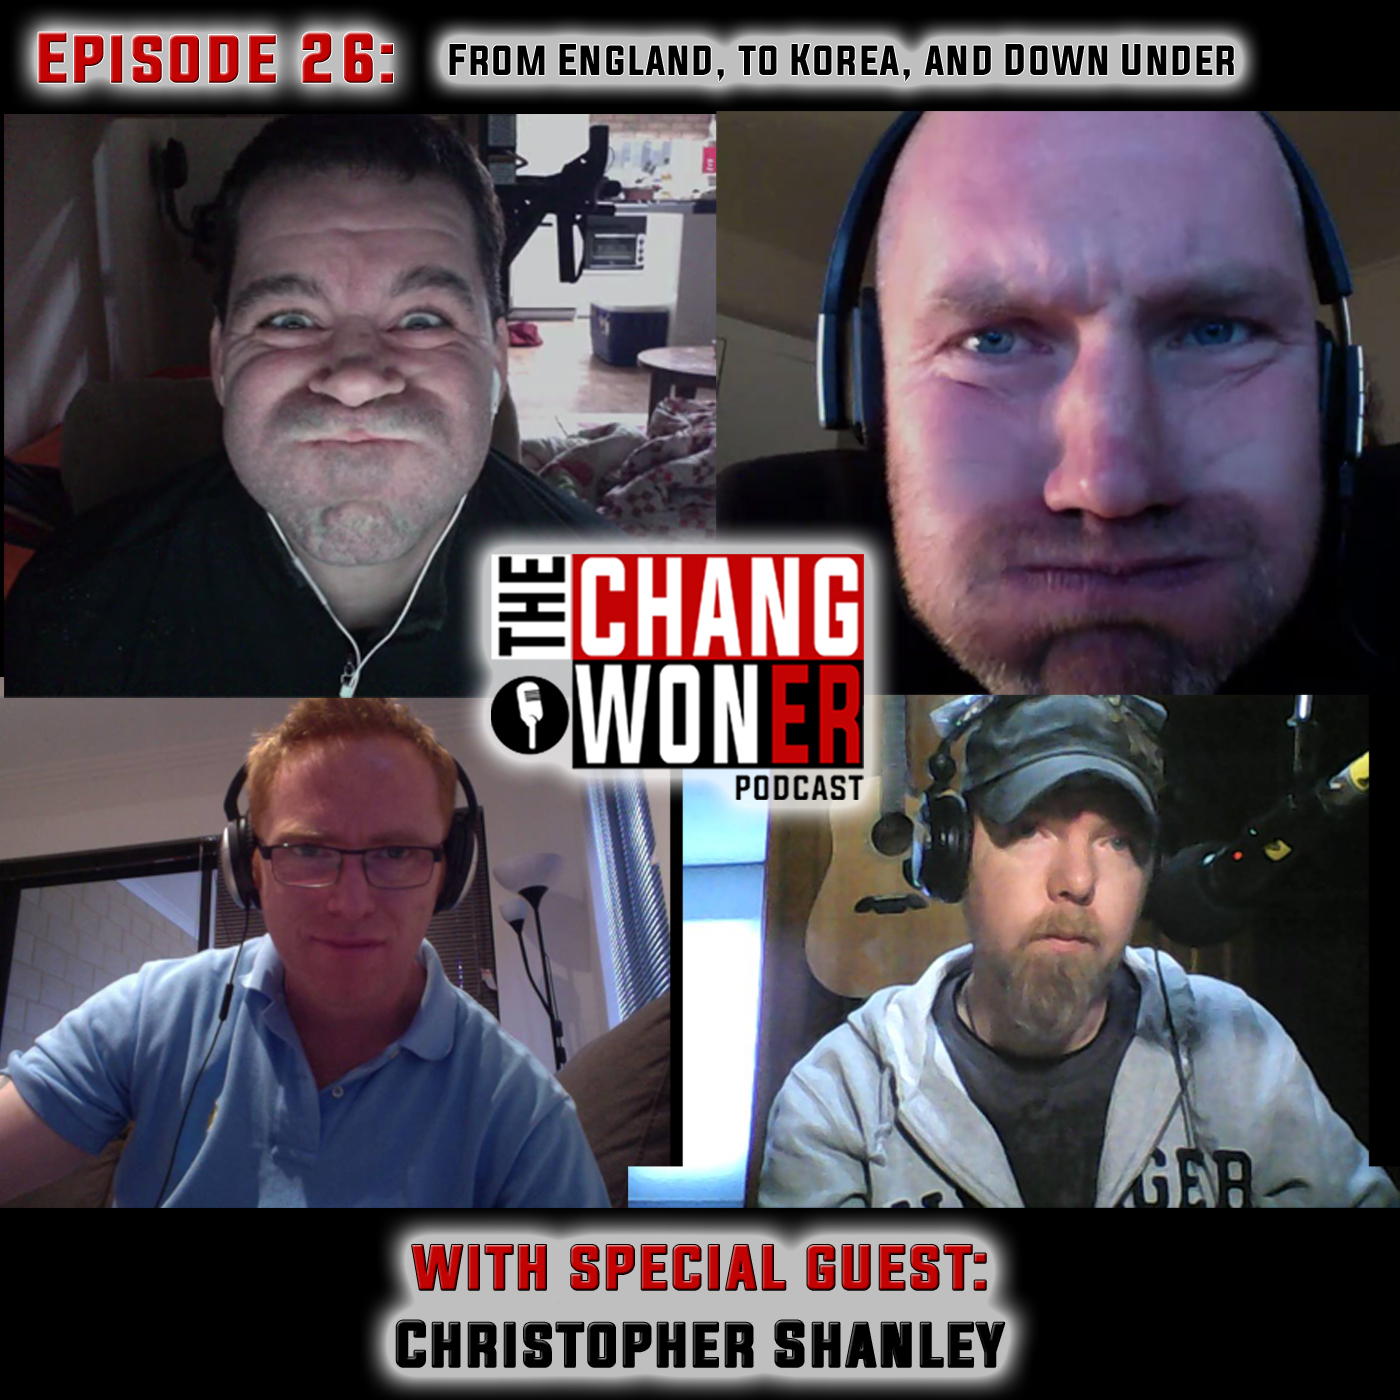 Artwork for Living in England, South Korea, and Australia. What Are the Differences? -guest Christopher Shanley (Ep 26)